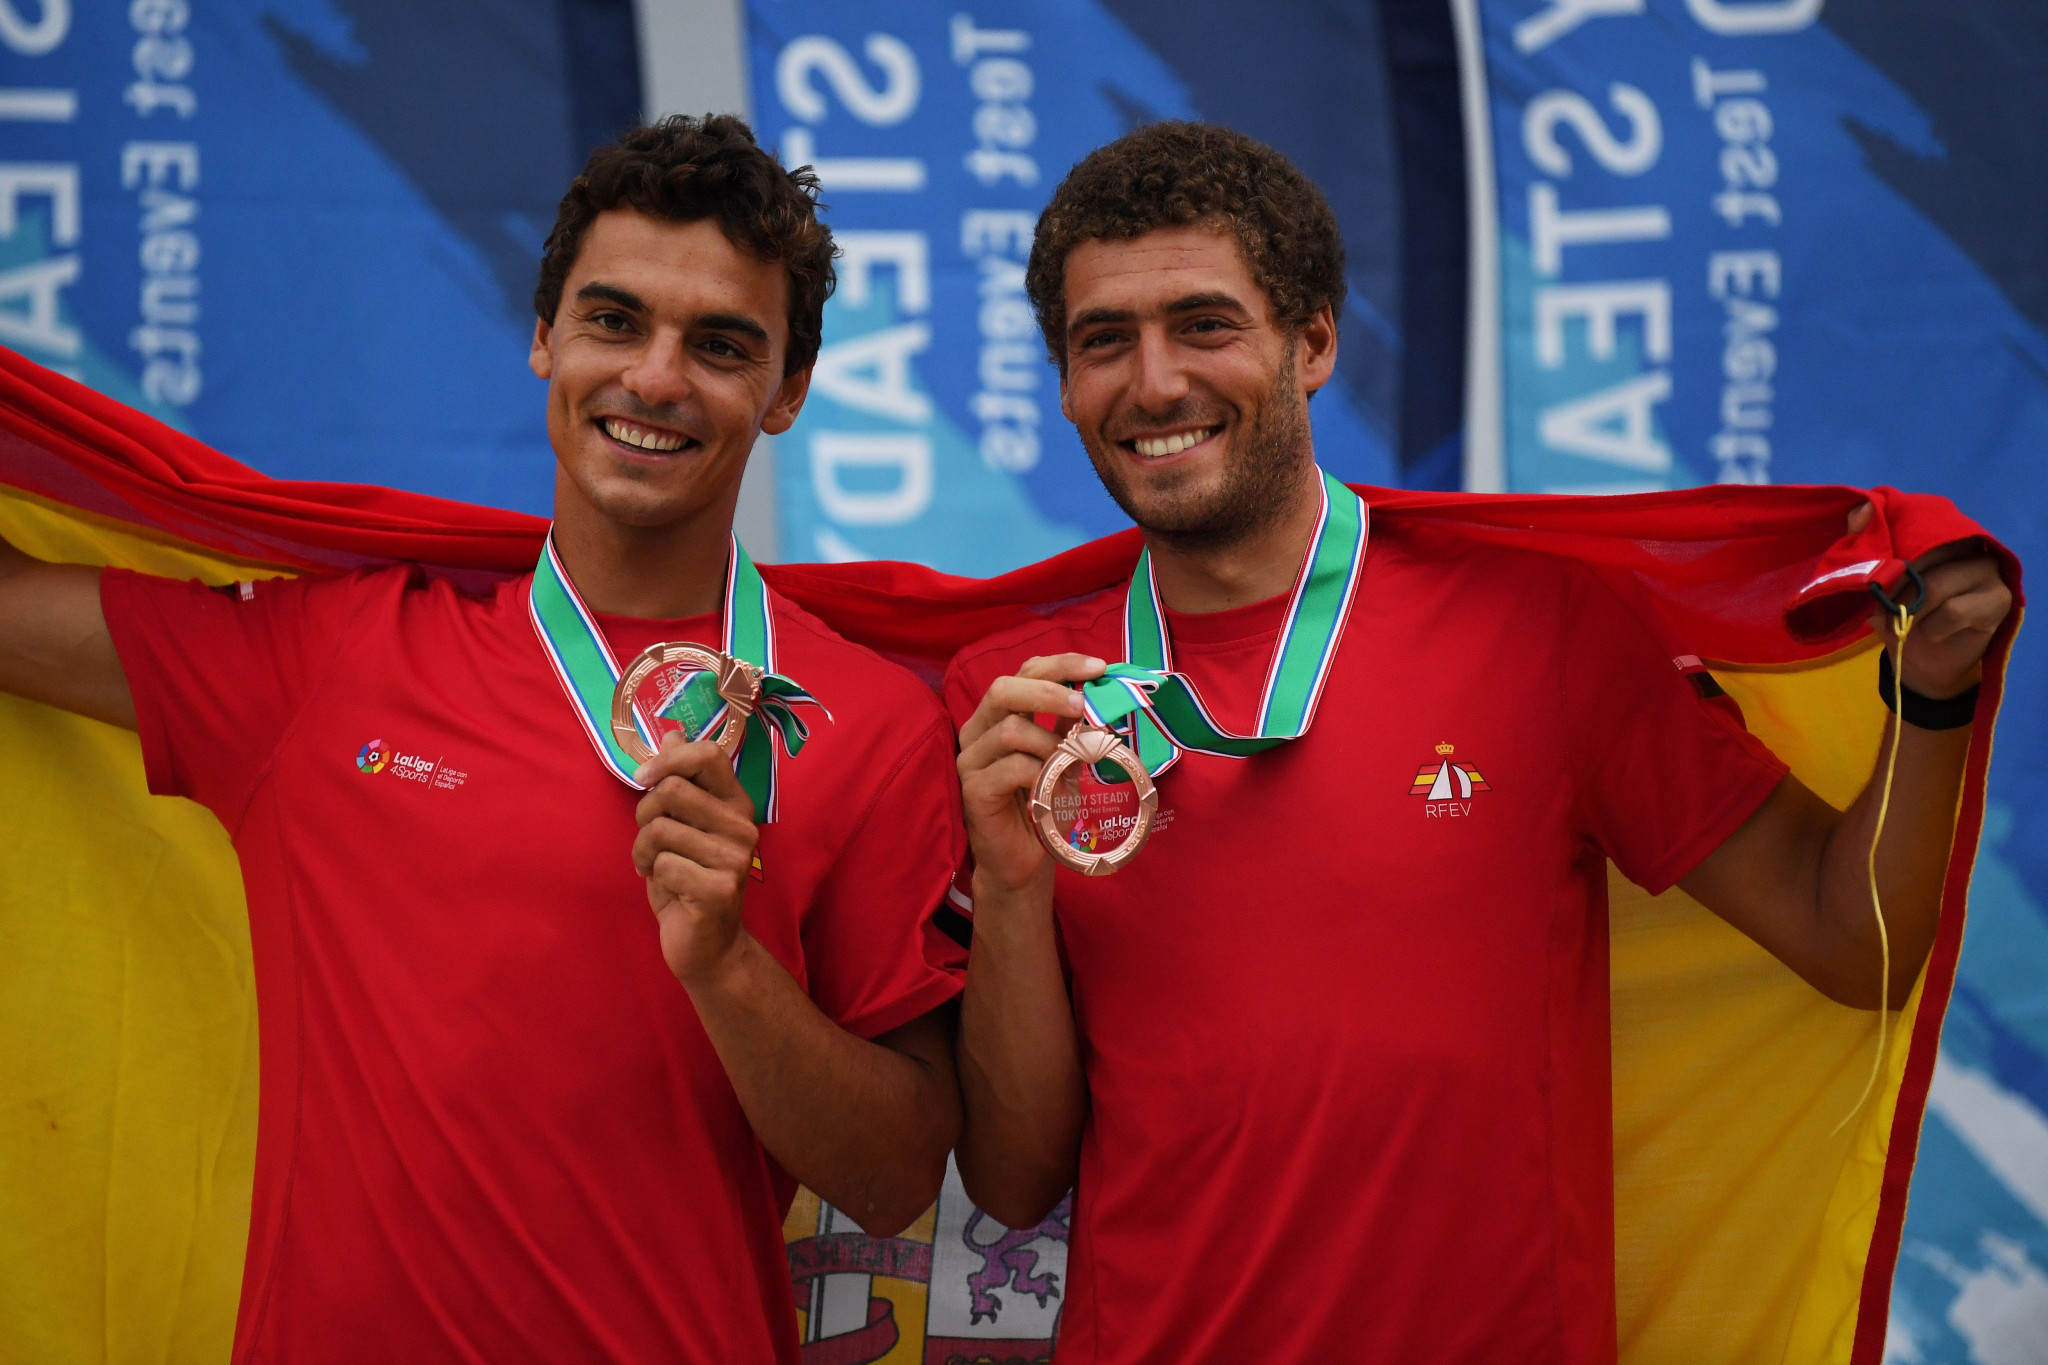 Xammar and Rodríguez lead men's event after opening day of 470 World Championships